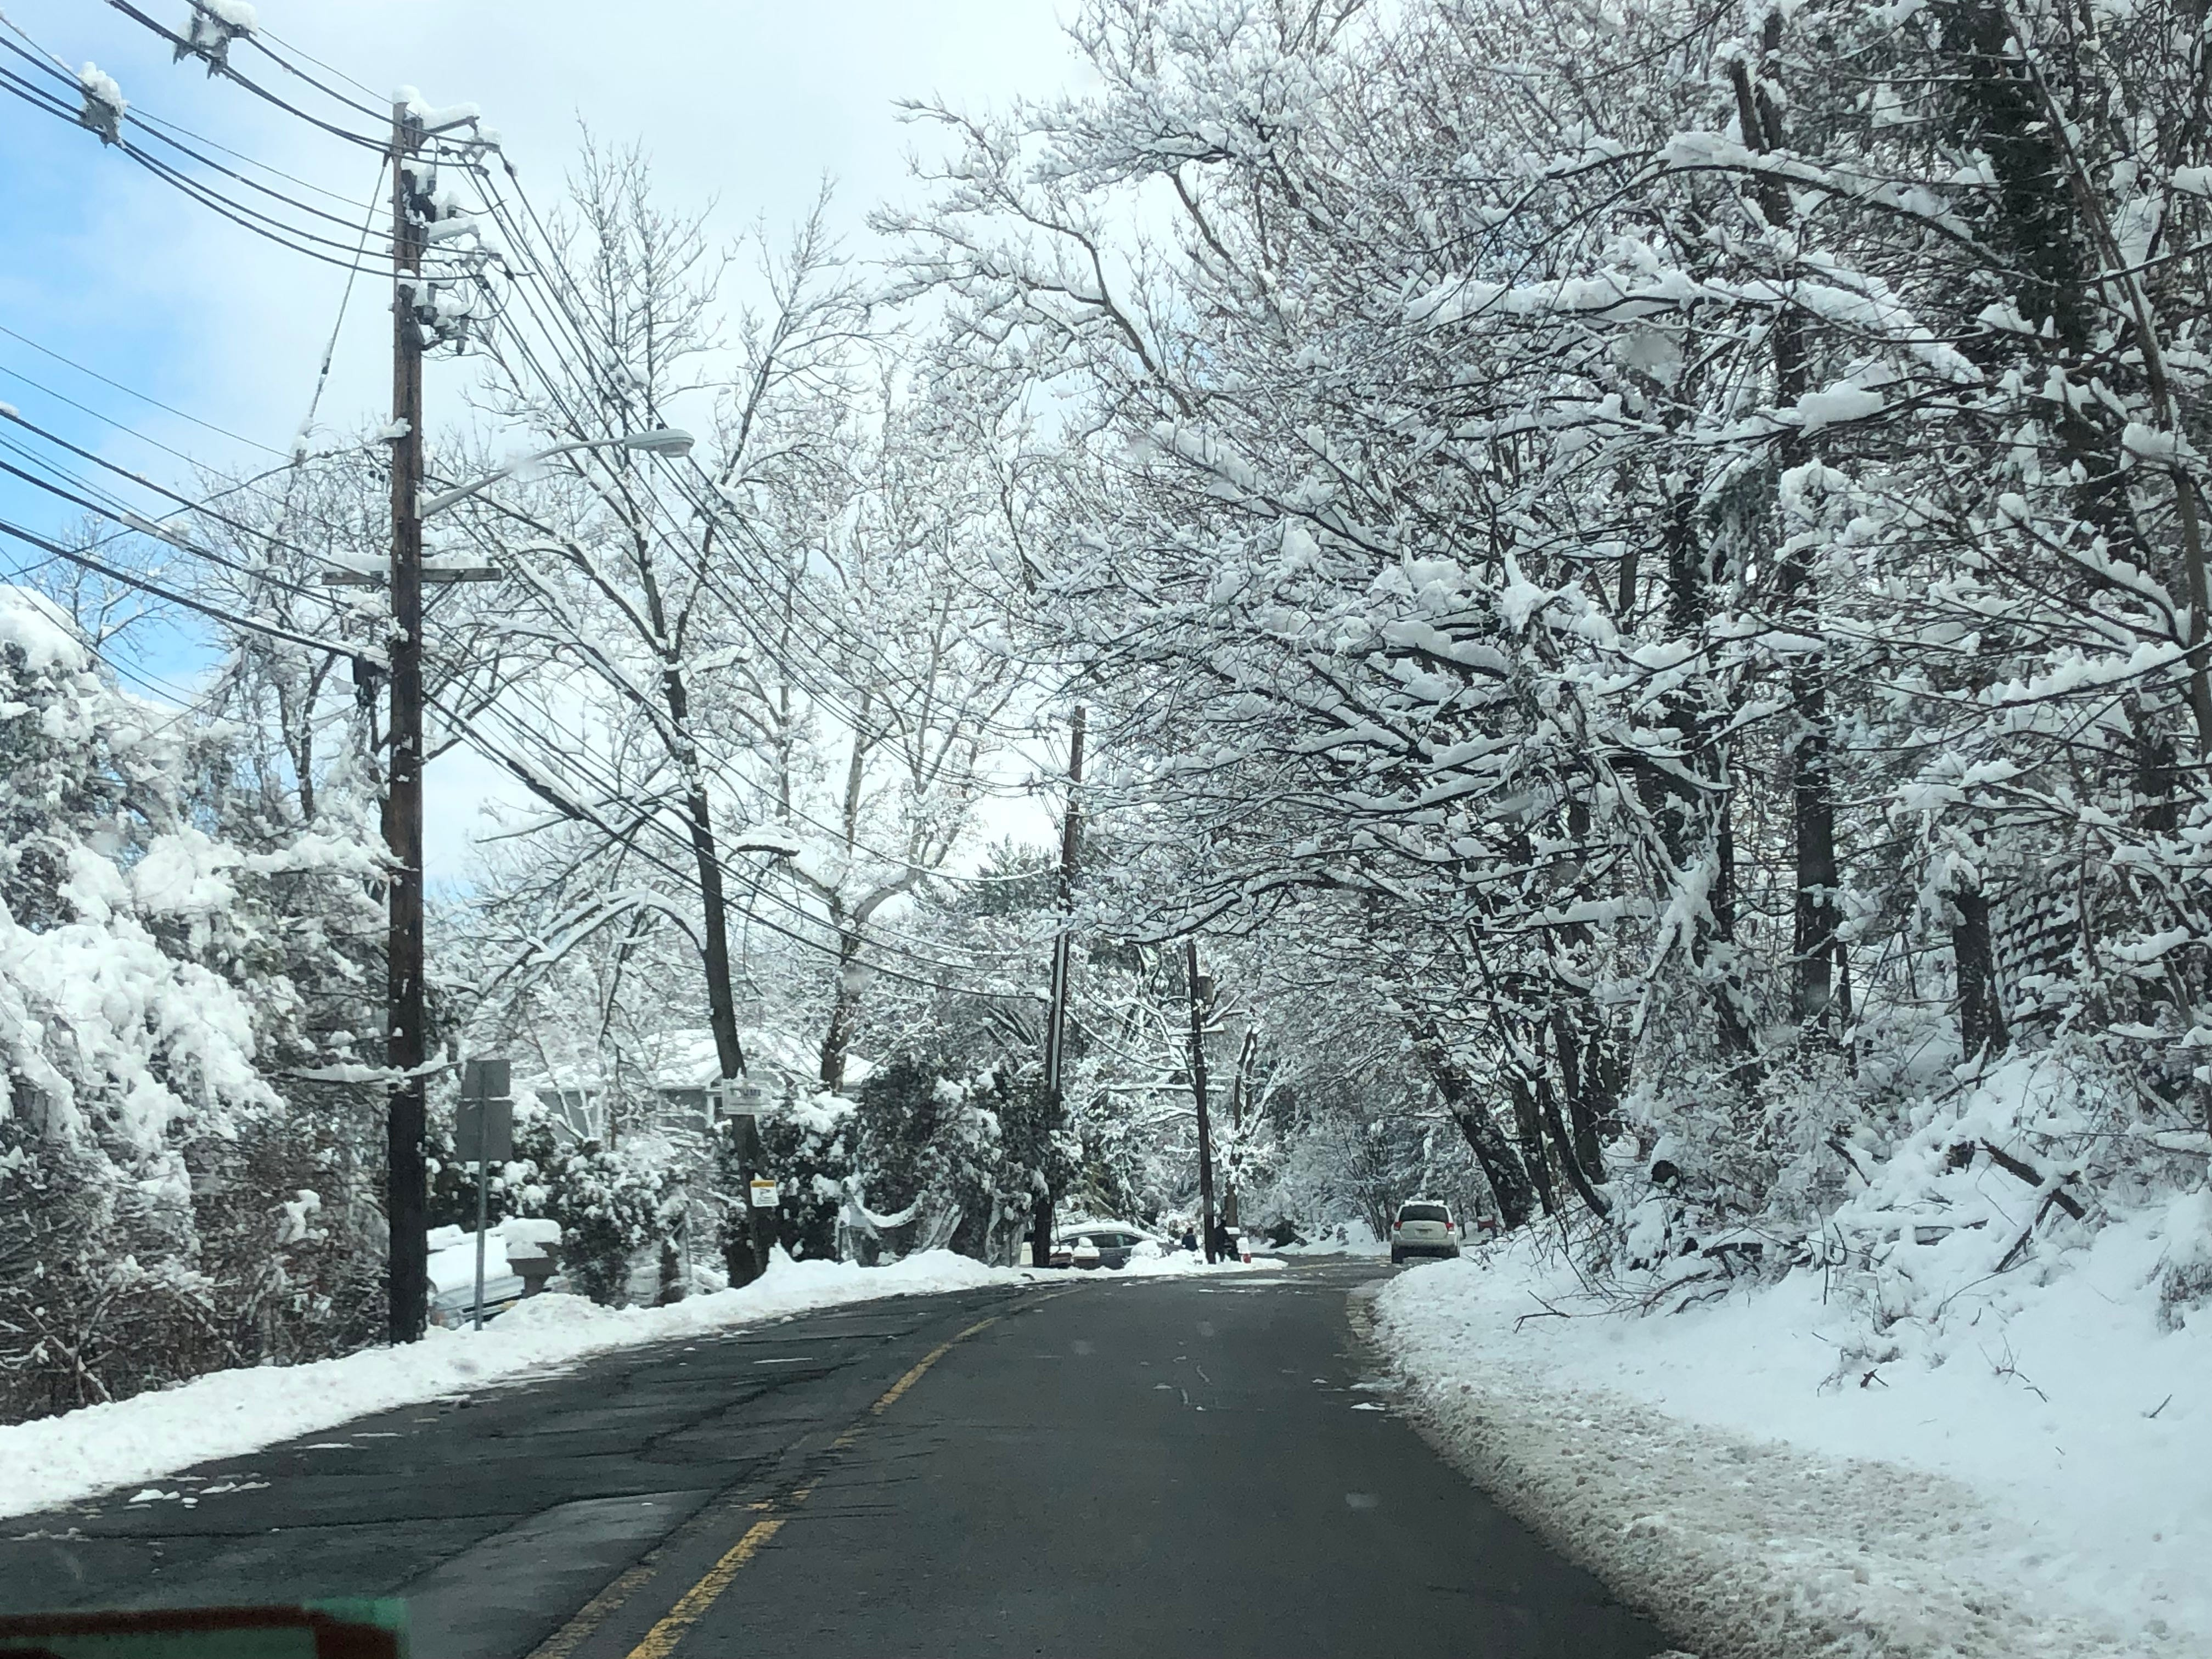 The trees over Rifle Camp Road in Woodland Park were heavy with snow.